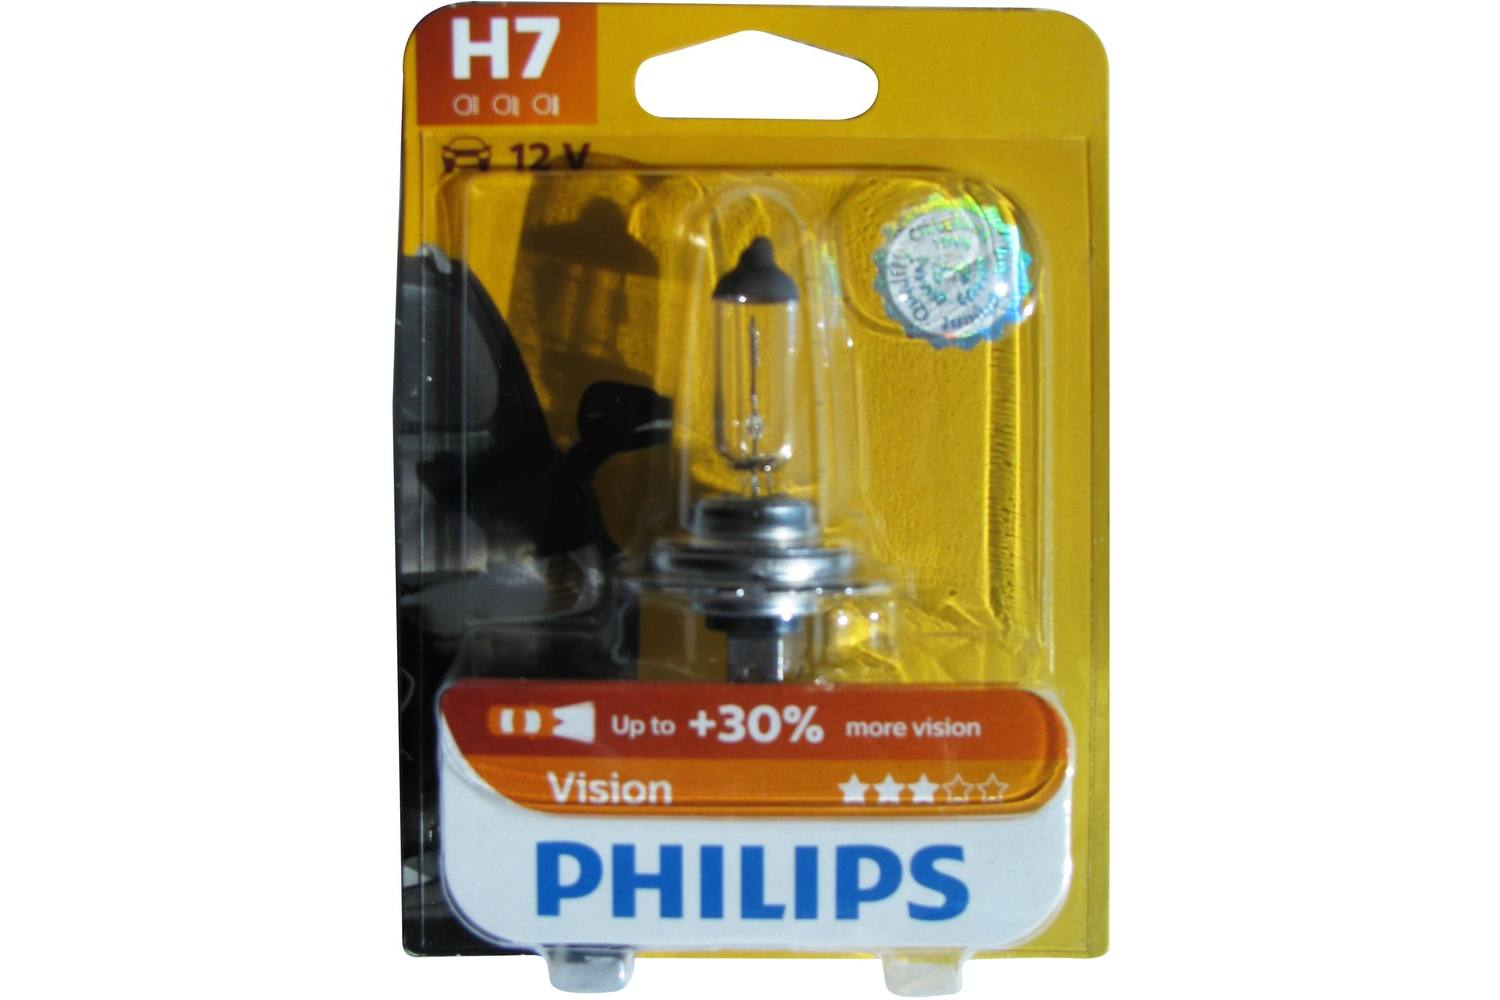 Car bulb, Philips, premium, 12V, H7 2